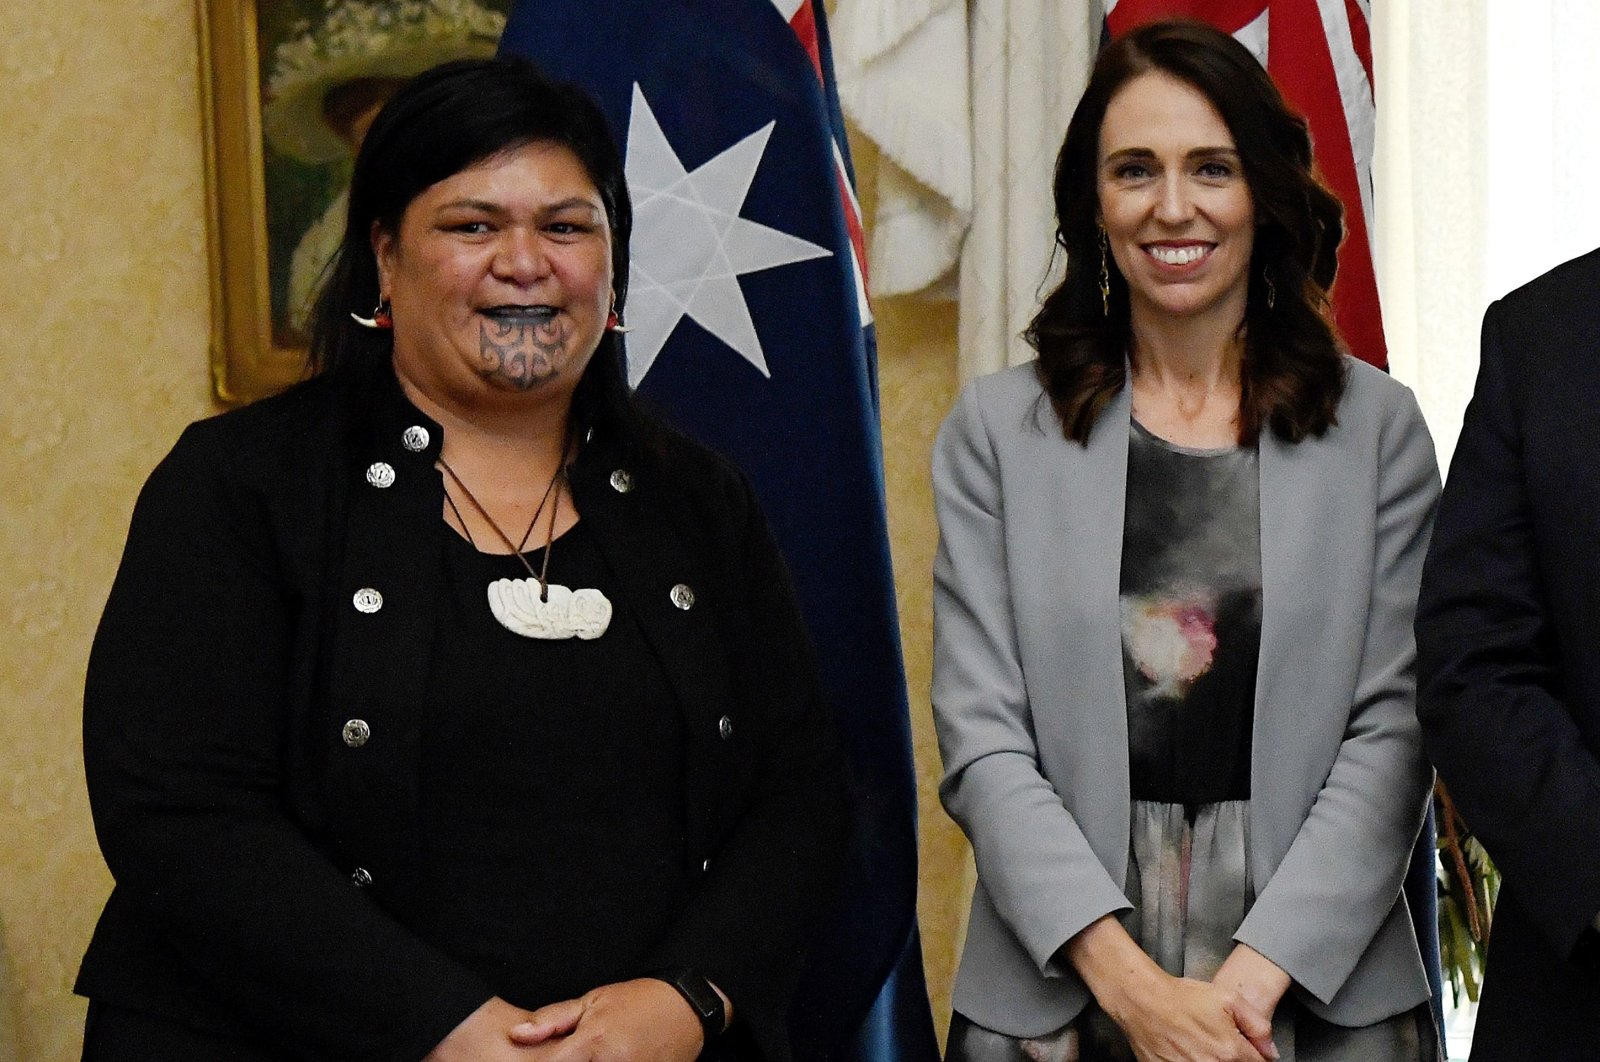 (FILES) This file Feb. 28, 2020 file photo shows New Zealand's Prime Minister Jacinda Ardern (R) and New Zealand's then-Minister of Maori Development and Local Government (L) Nanaia Mahuta posing for photographs after the signing of the Indigenous Collaboration Arrangement with their Australian counterparts at Admiralty House in Sydney. (AFP Photo)